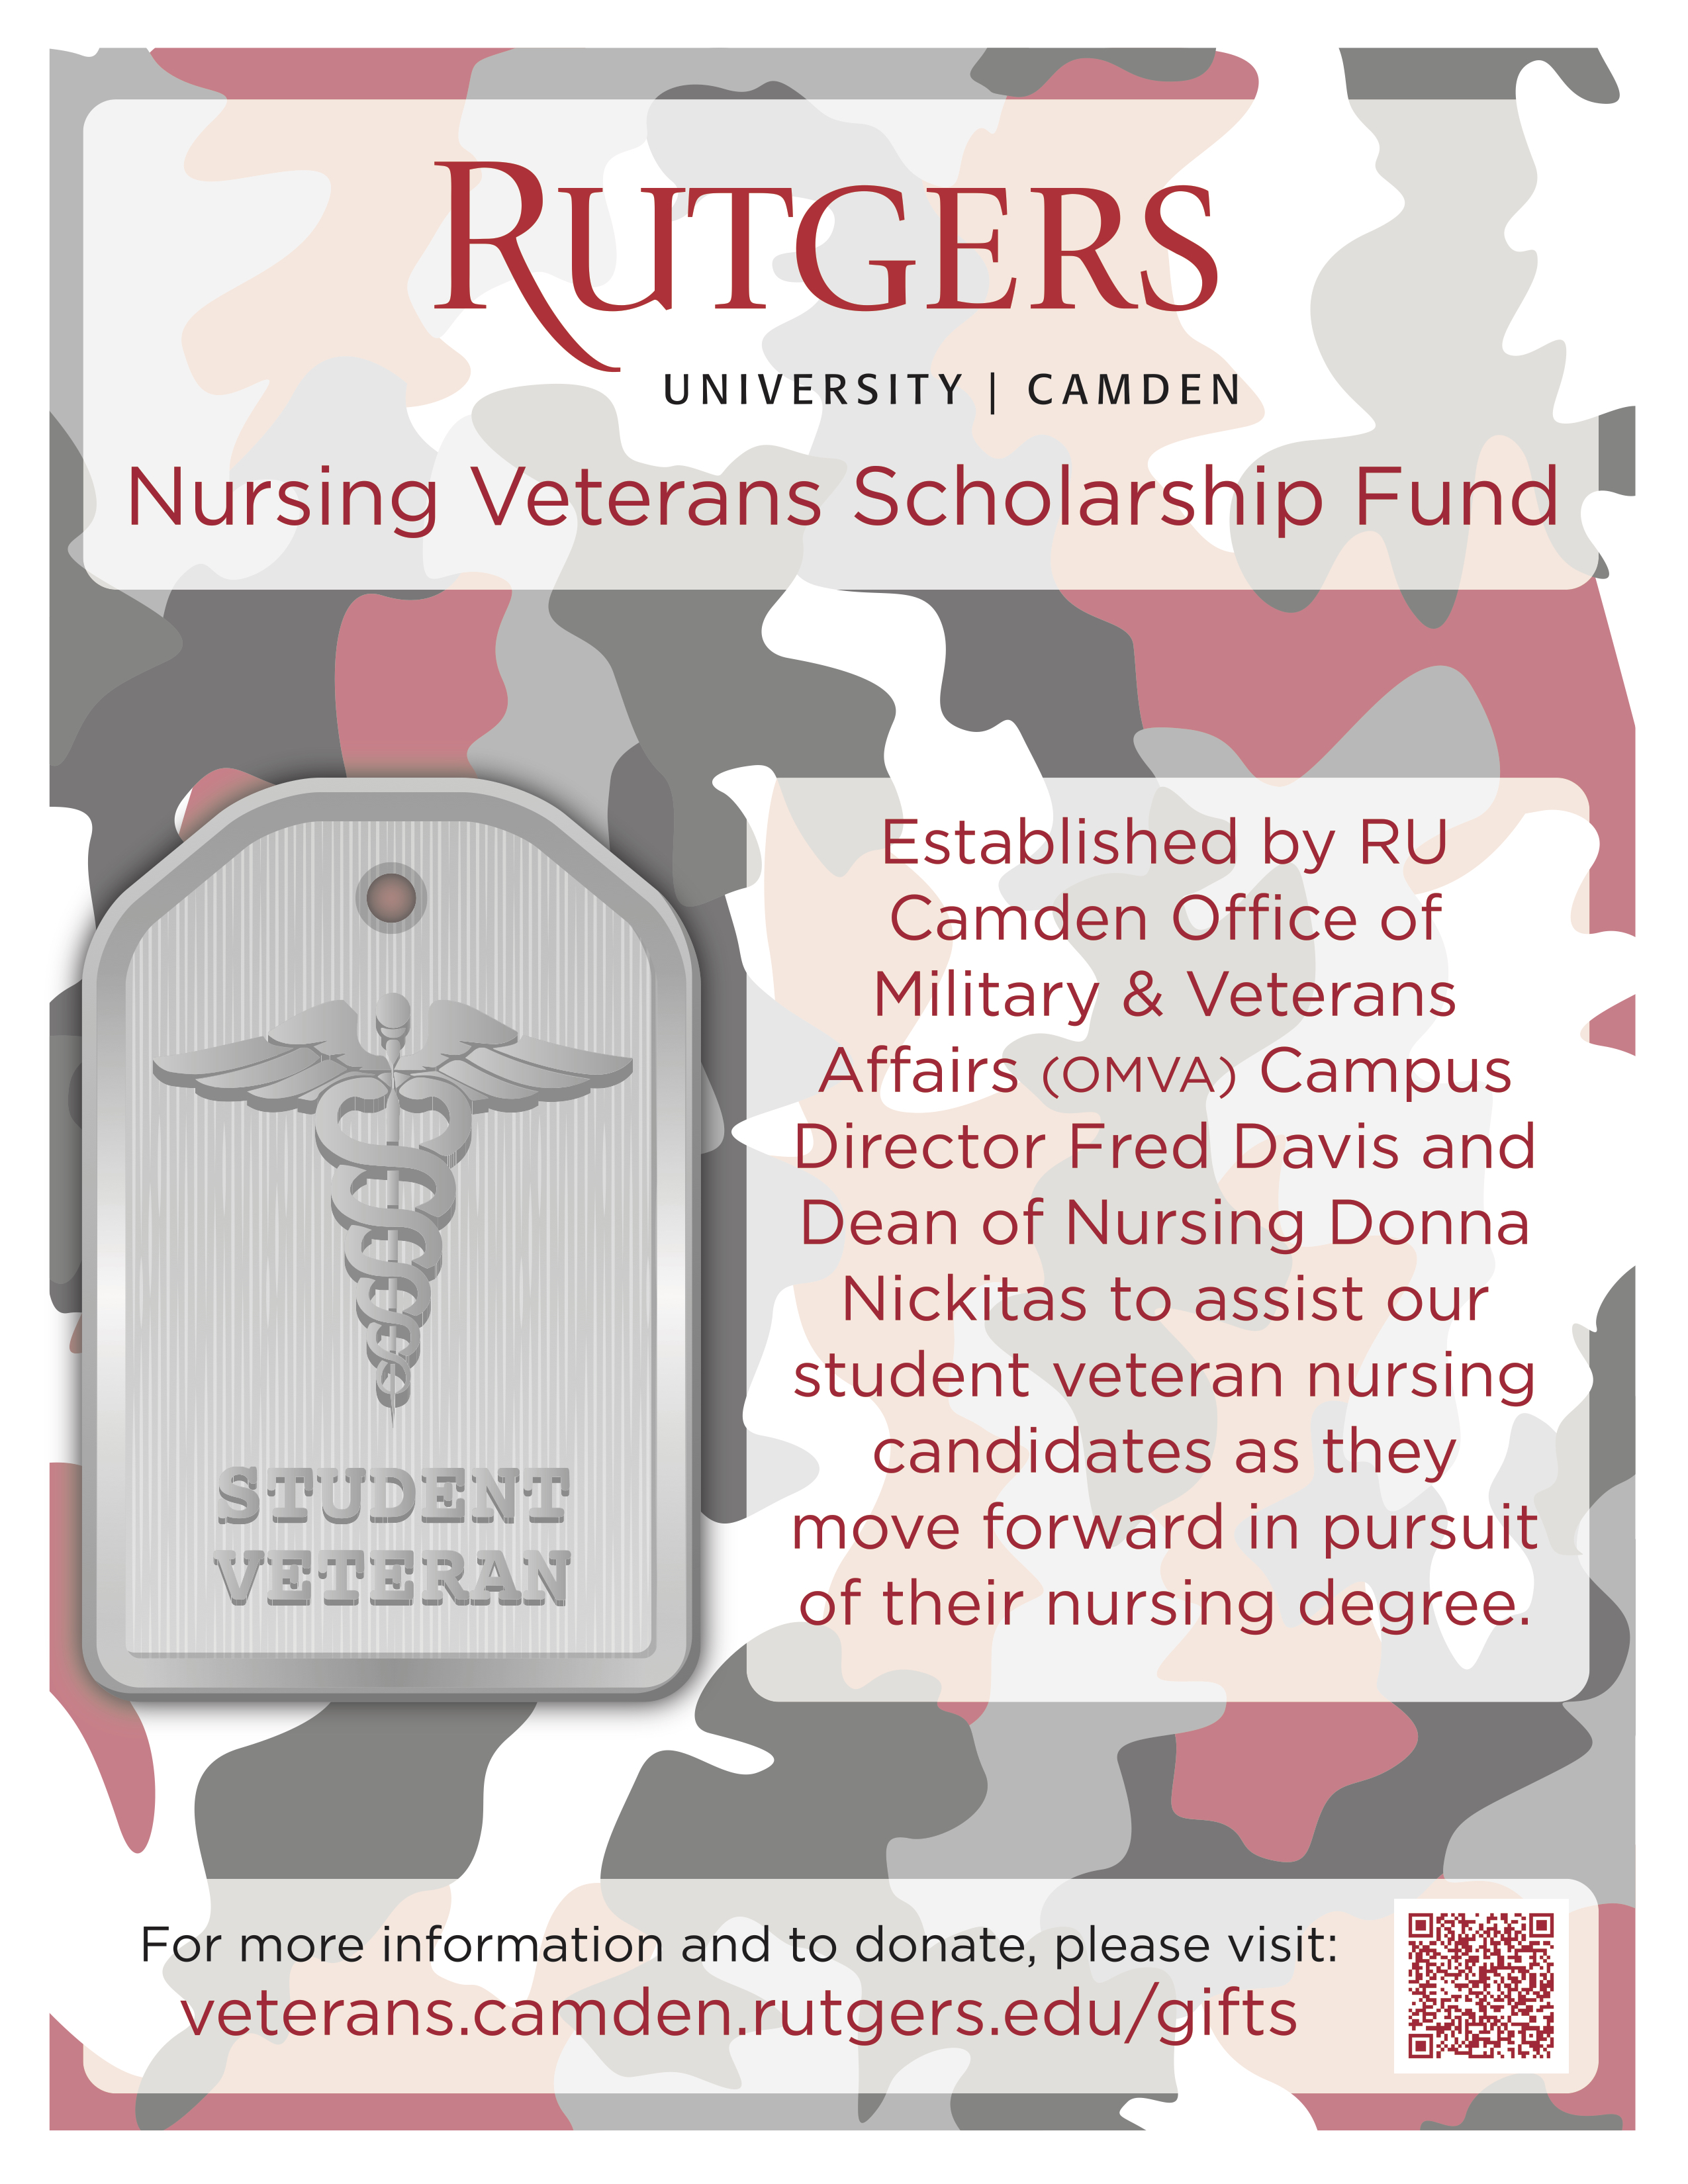 Nursing Veterans Scholarship Fund Image Link